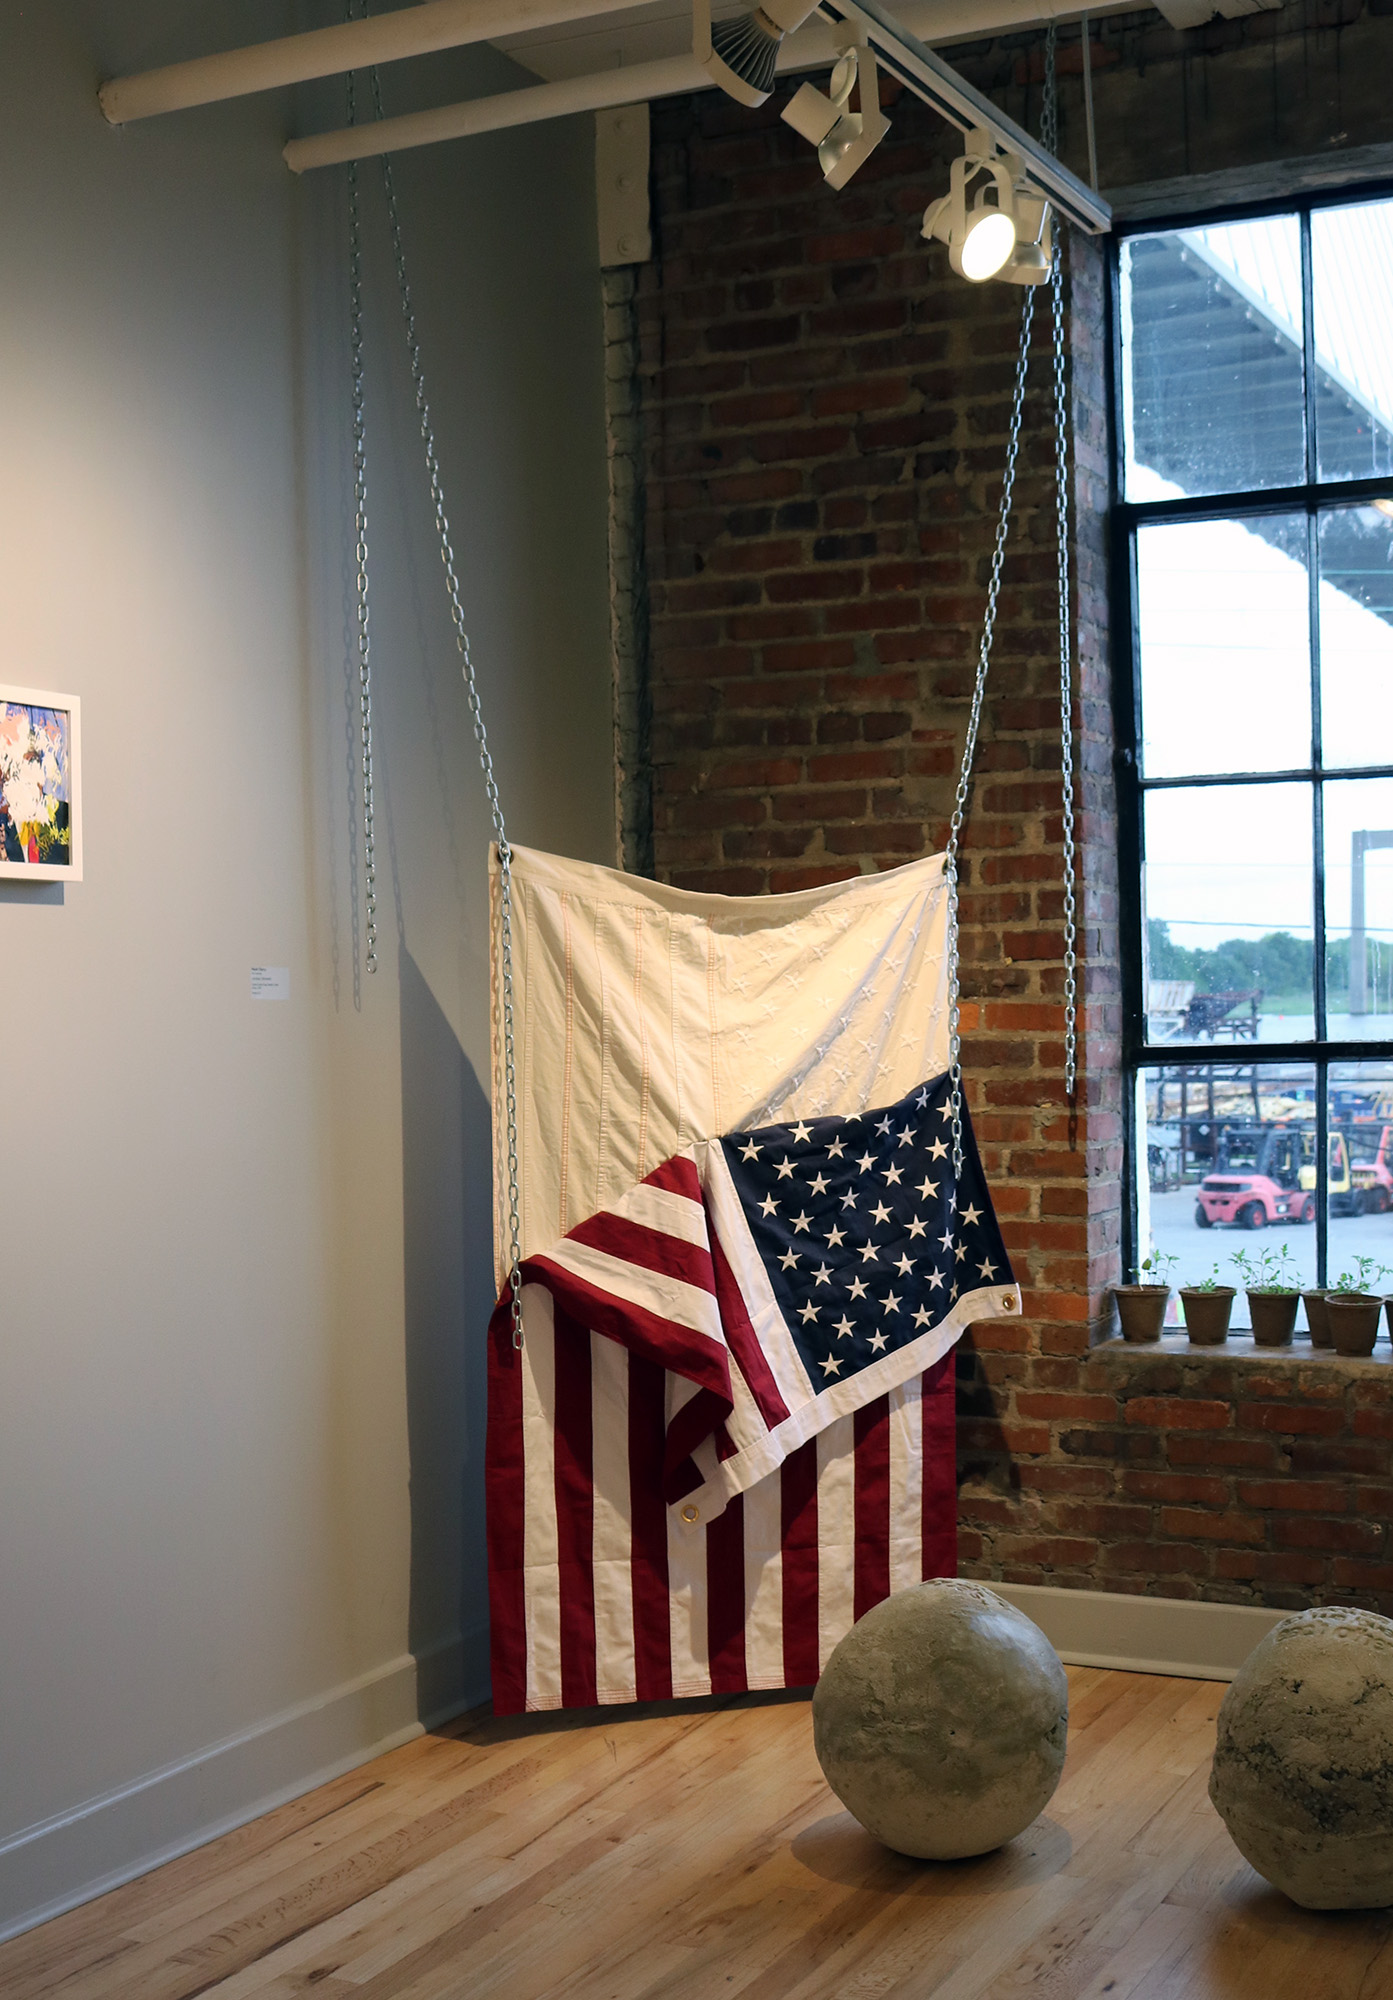 "#15 (Skinned)  Installation view United States flags, bleach, sinew, chain 84""x60"" 2017"